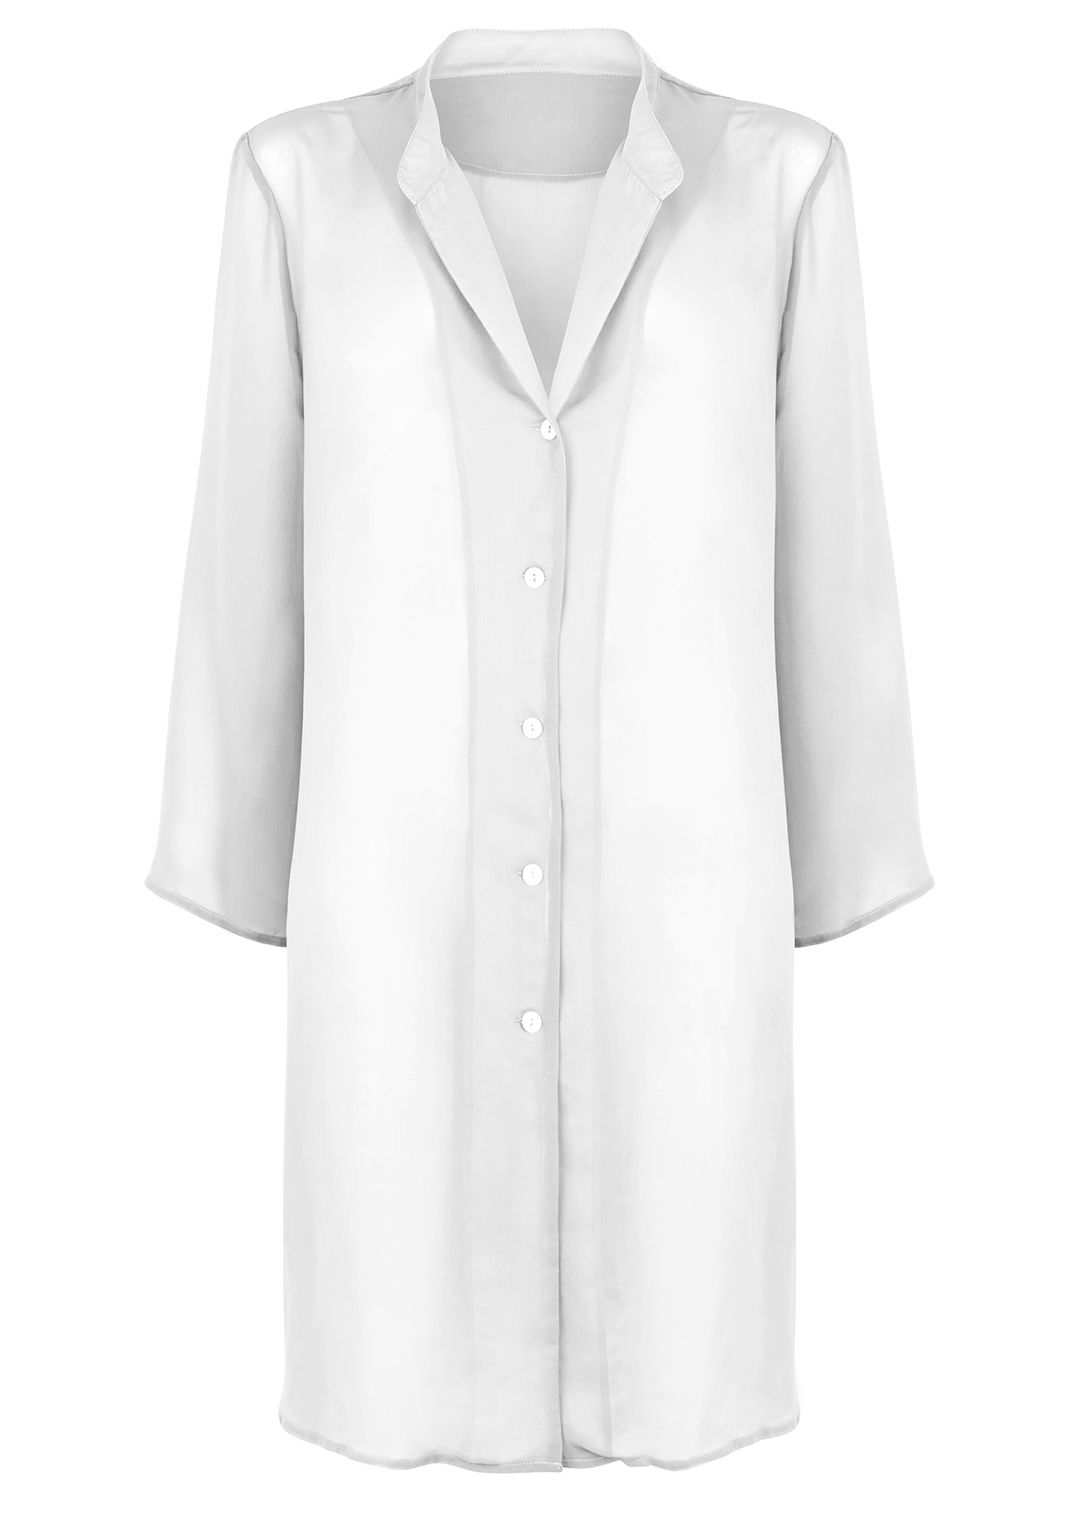 Seaspray Just plain chiffon shirt white, White